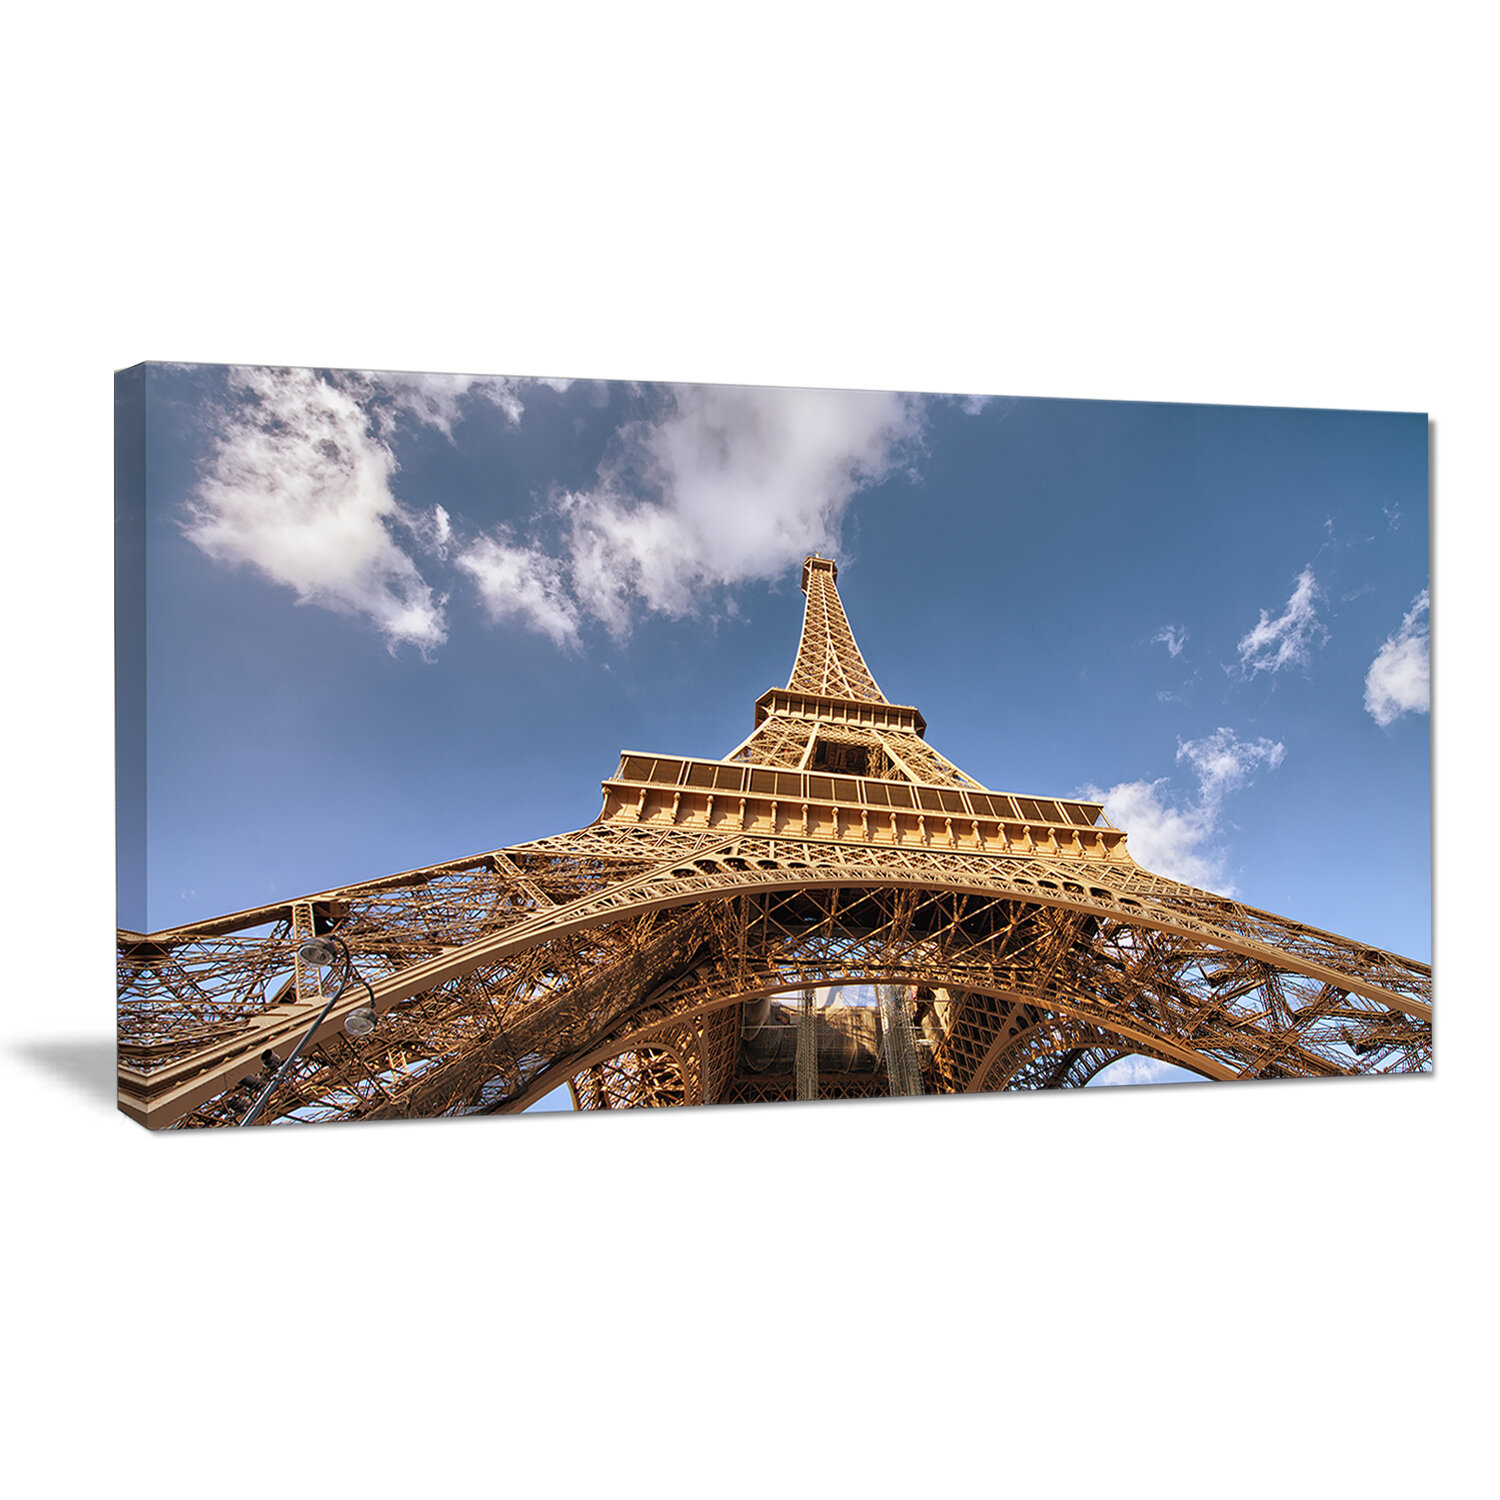 Designart Beautiful View Of Paris Eiffel Tower Under Calm Sky Cityscape Photographic Print On Wrapped Canvas Wayfair